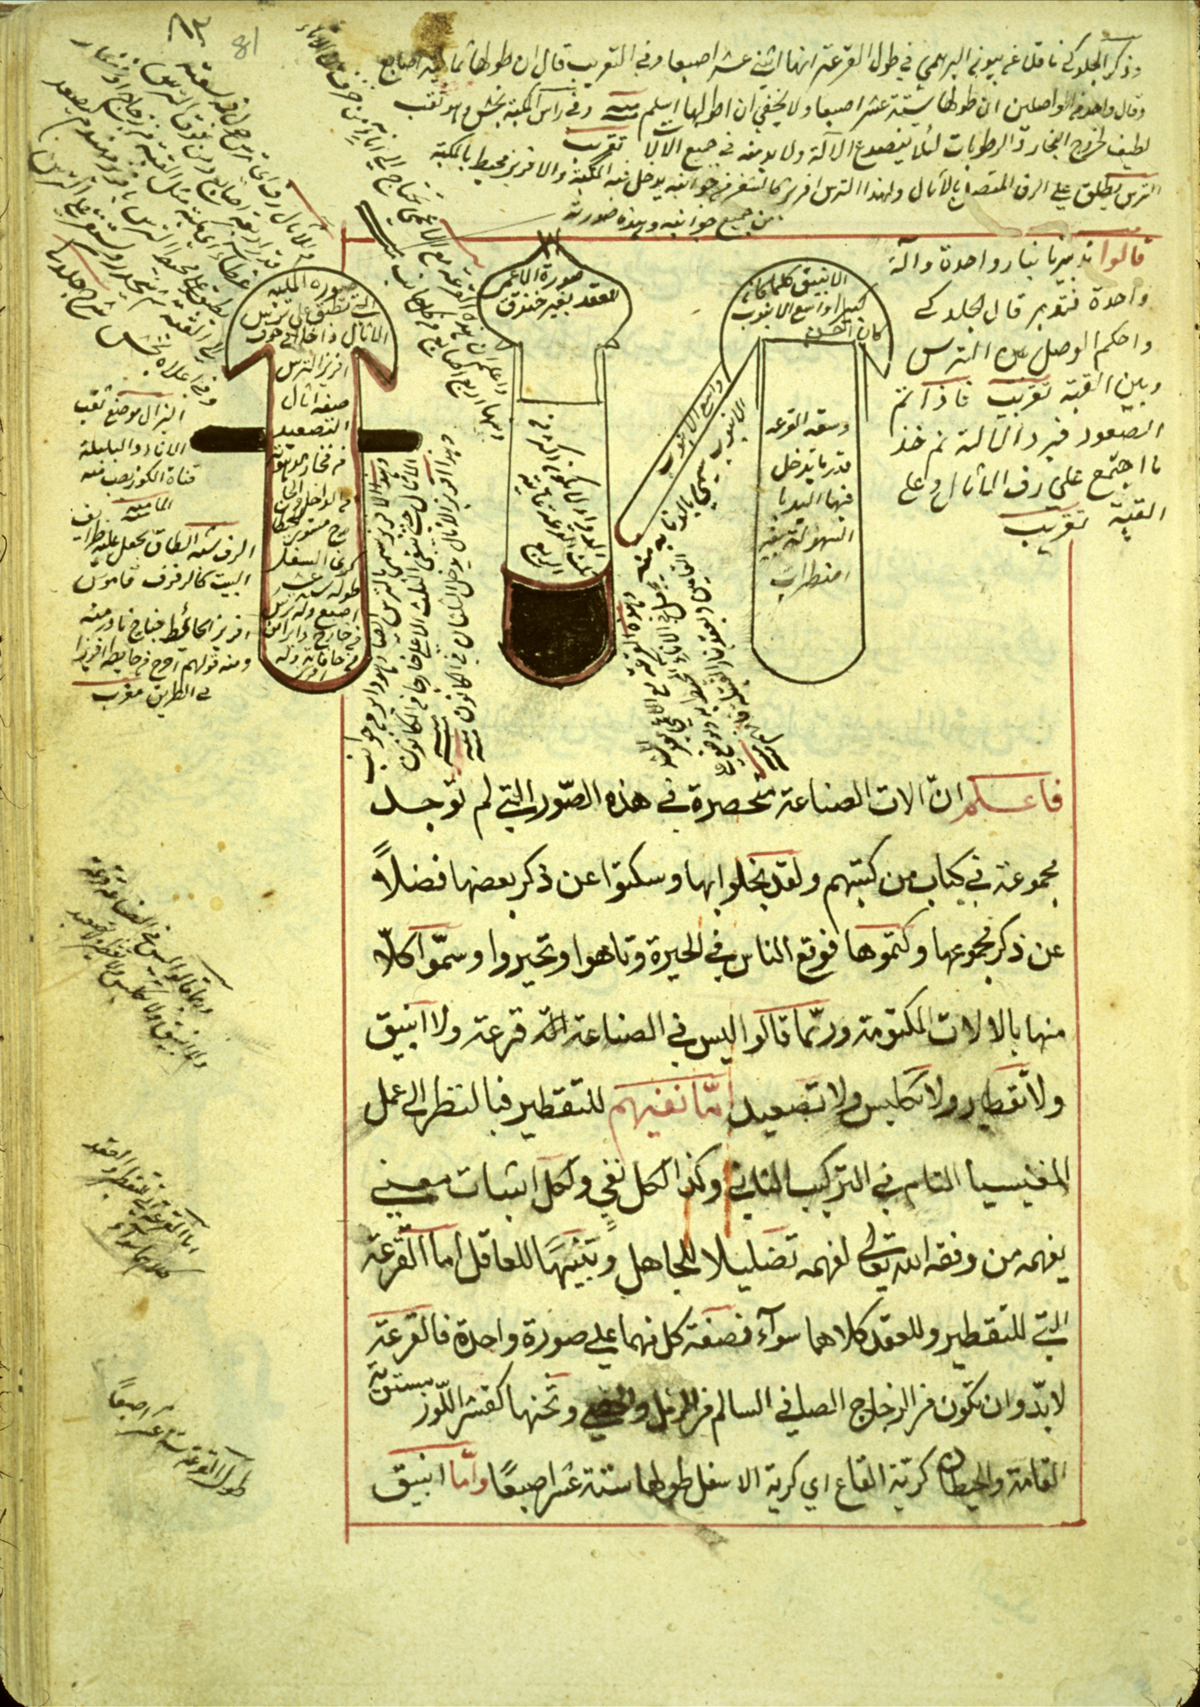 islamic medical manuscripts alchemy 50 folio 81a of ab363 al q257sim mu7717ammad ibn abd all257h al an7779257r299 s shar7717